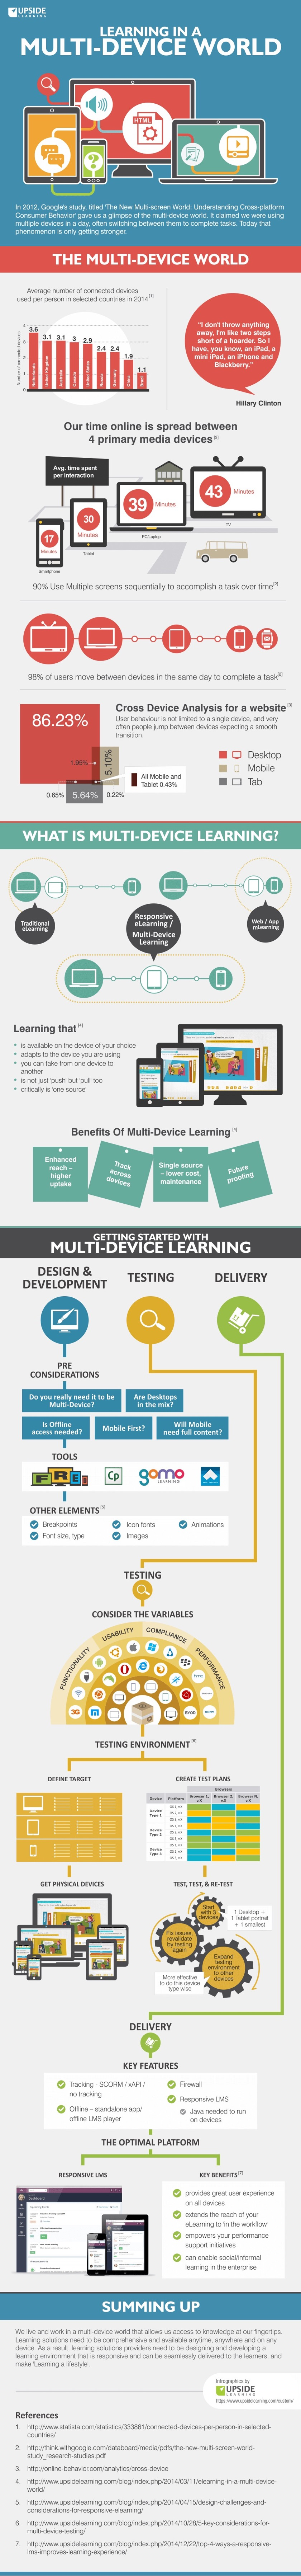 Learning in a multi-device world - full infographic